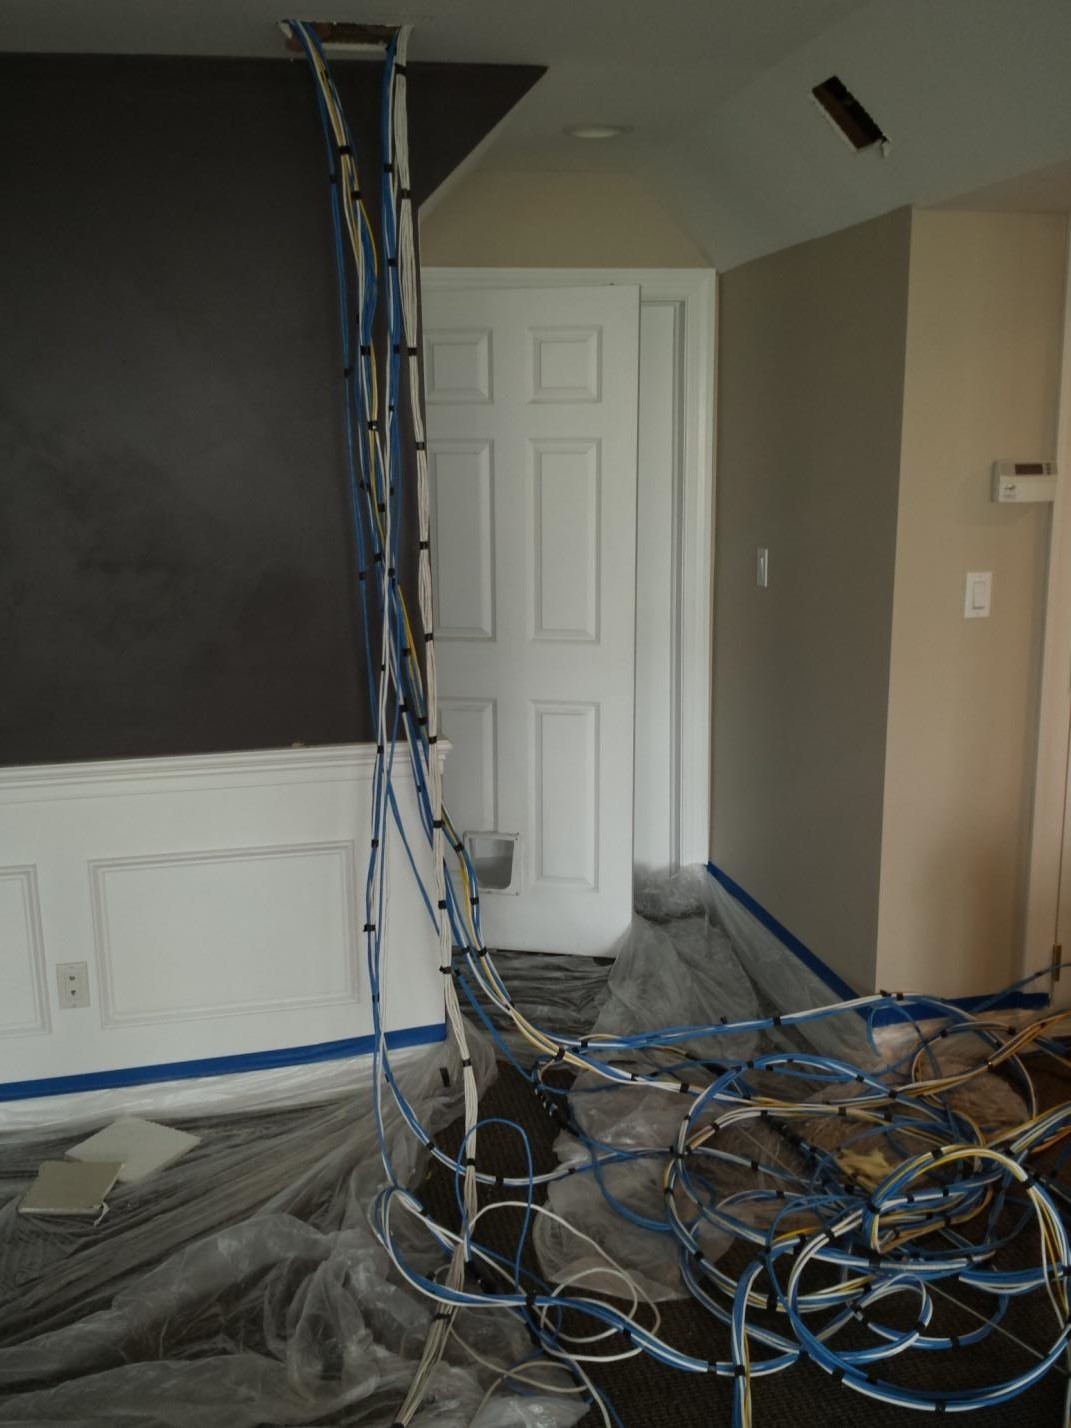 Residential Structured Wiring Project Scarsdale Ny Dtv Structuredwiring Cables Included Audio Coax And Internet Connections